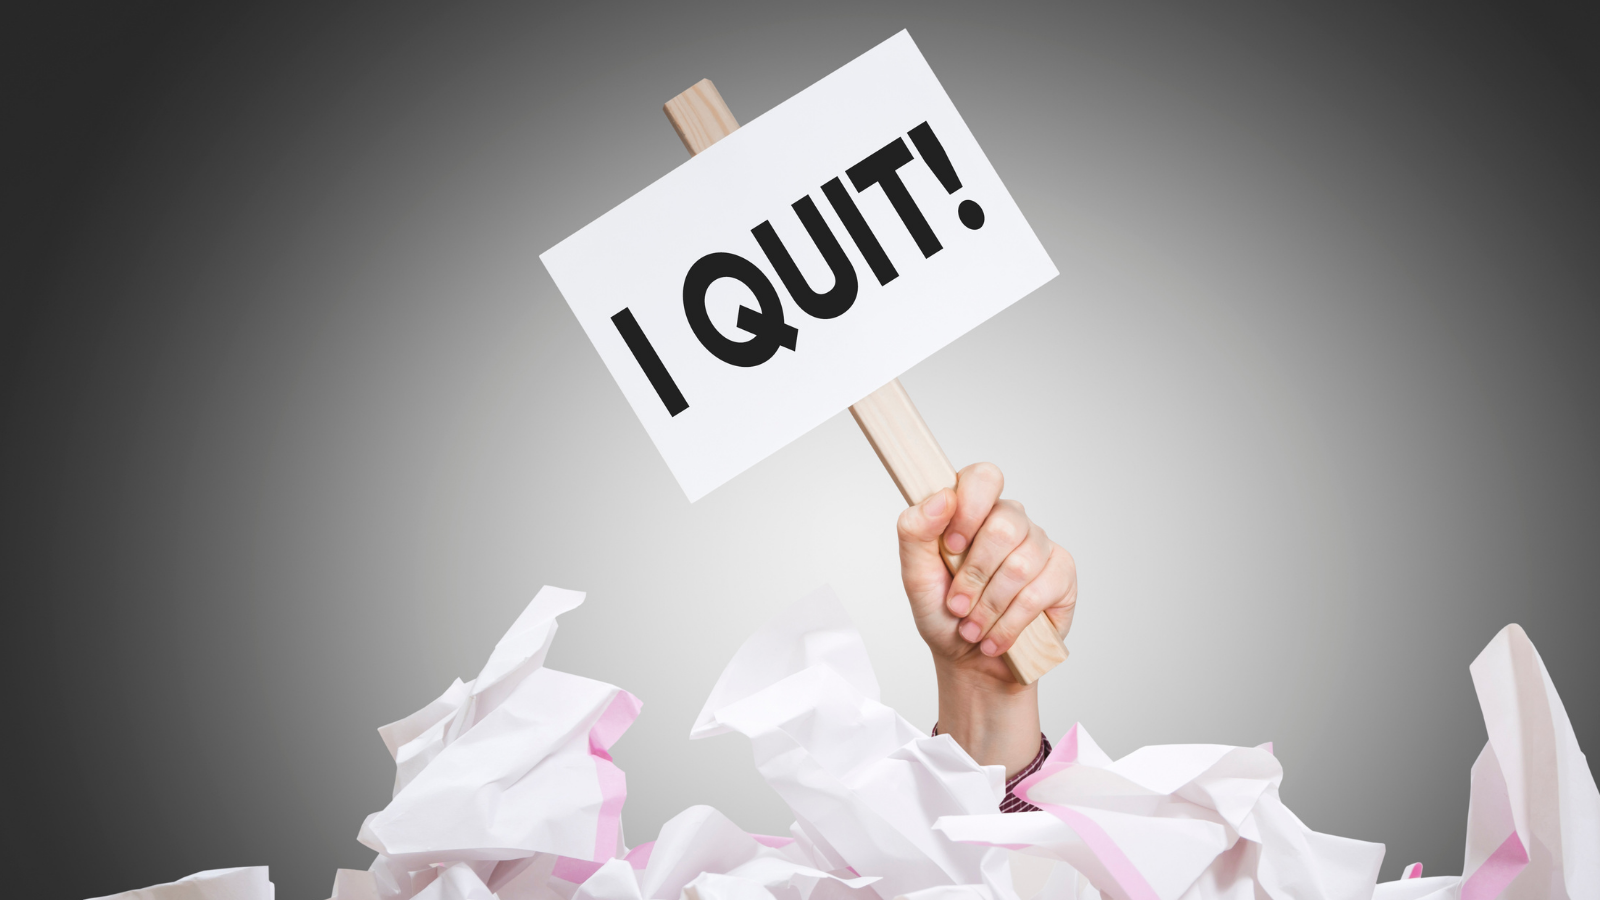 The Great Resignation: 40% of U.S. Employees Voluntarily Leave Their Jobs